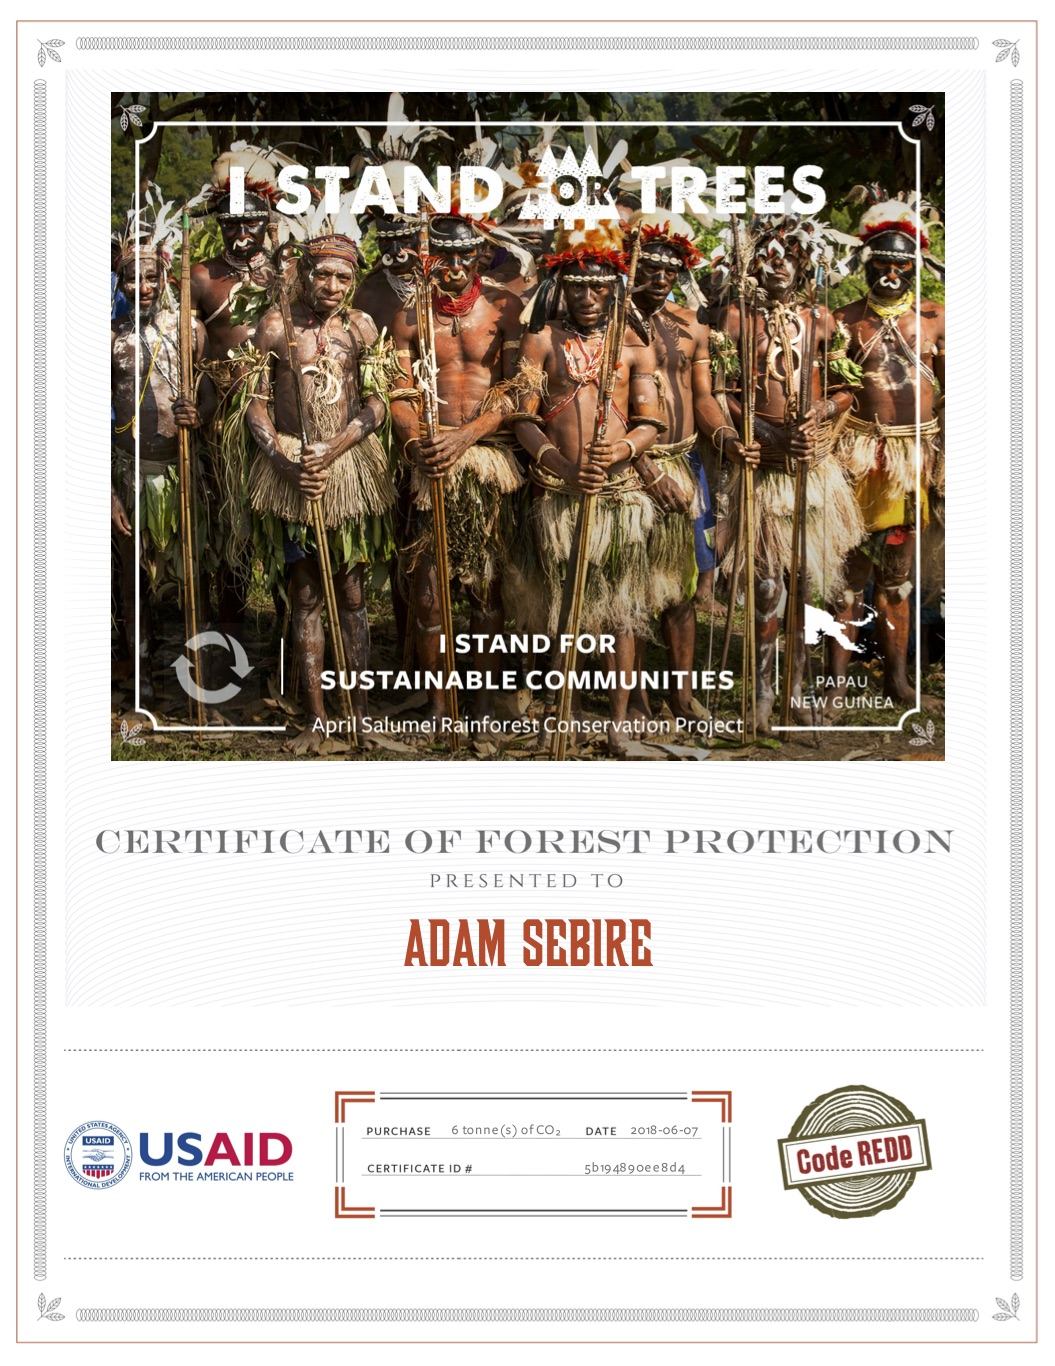 Carbon offset certificate for Adam's 6t of flight emissions